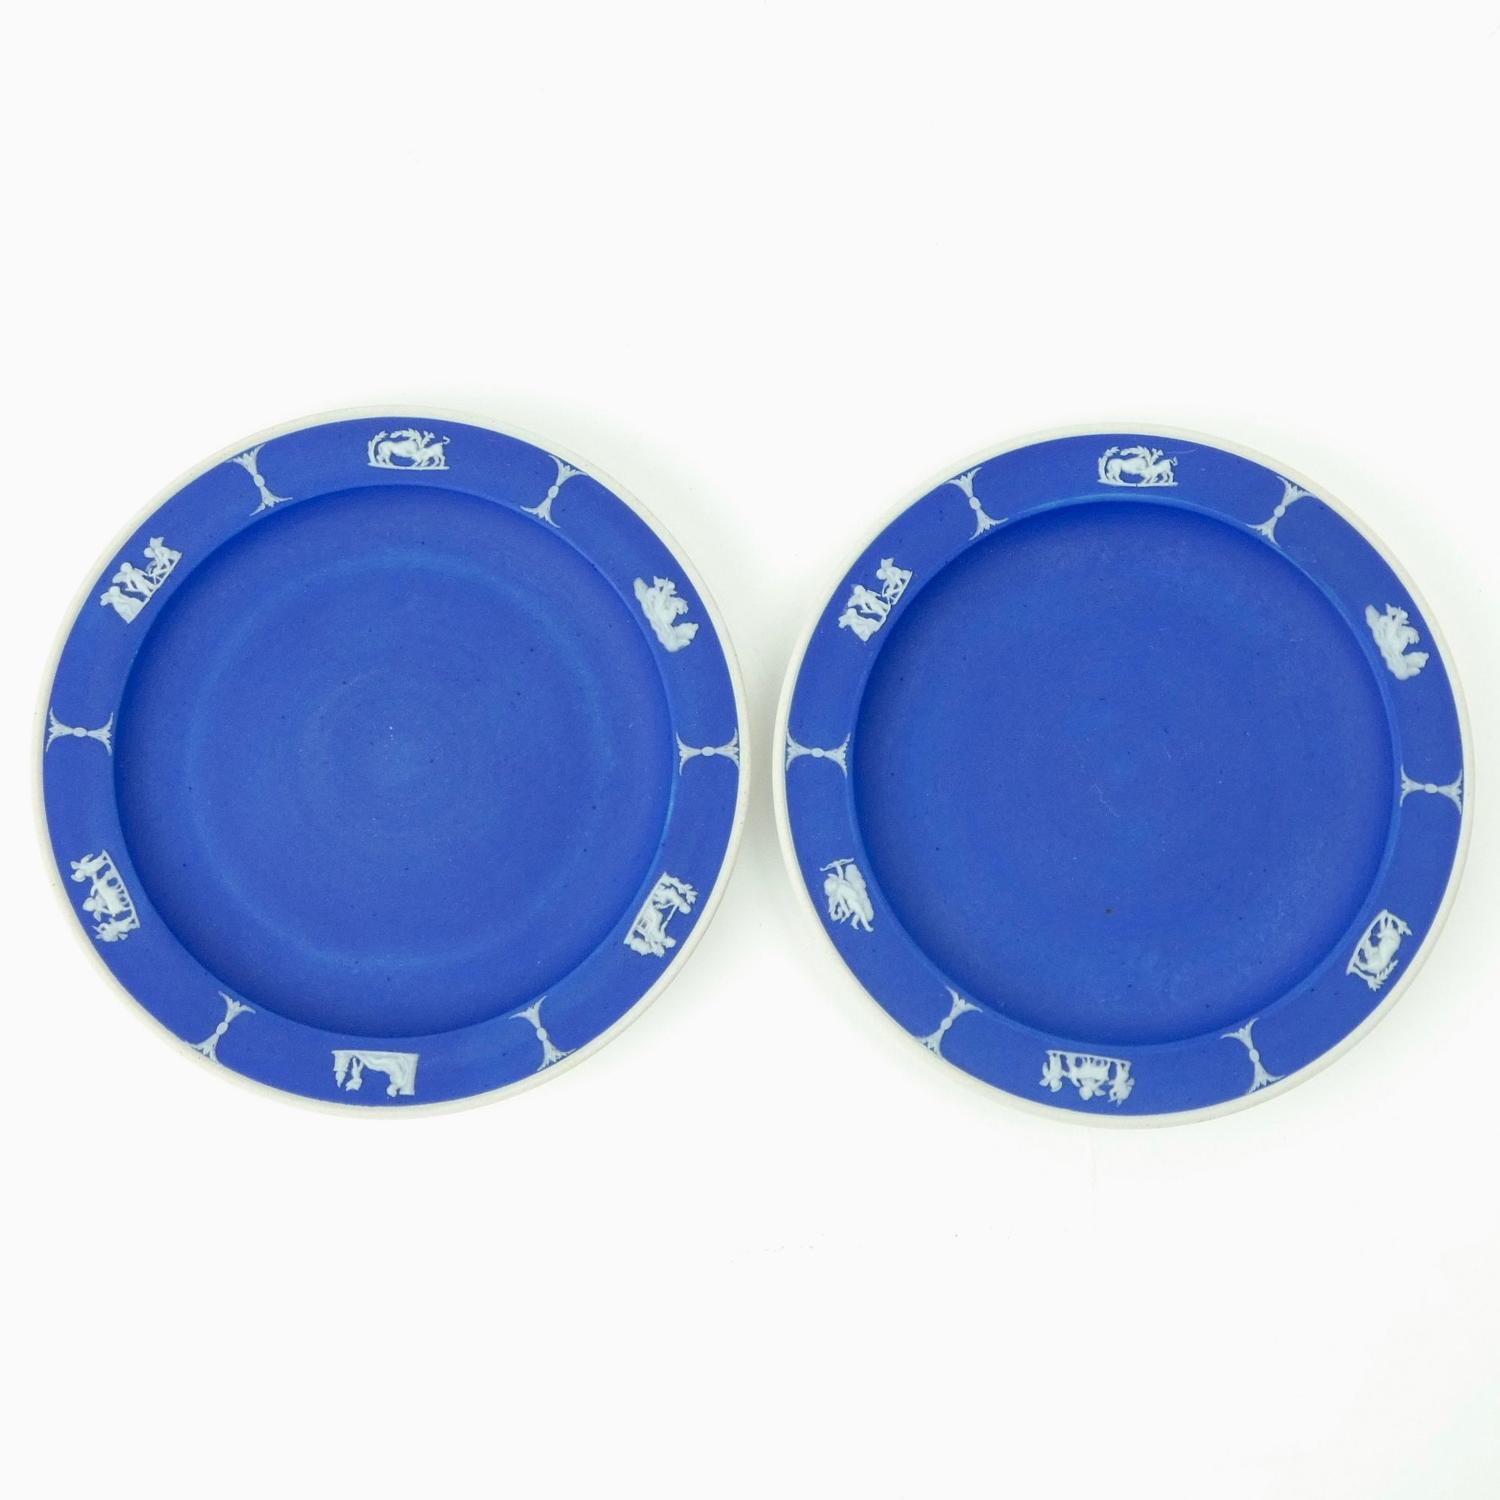 Pair of jasper tea plates